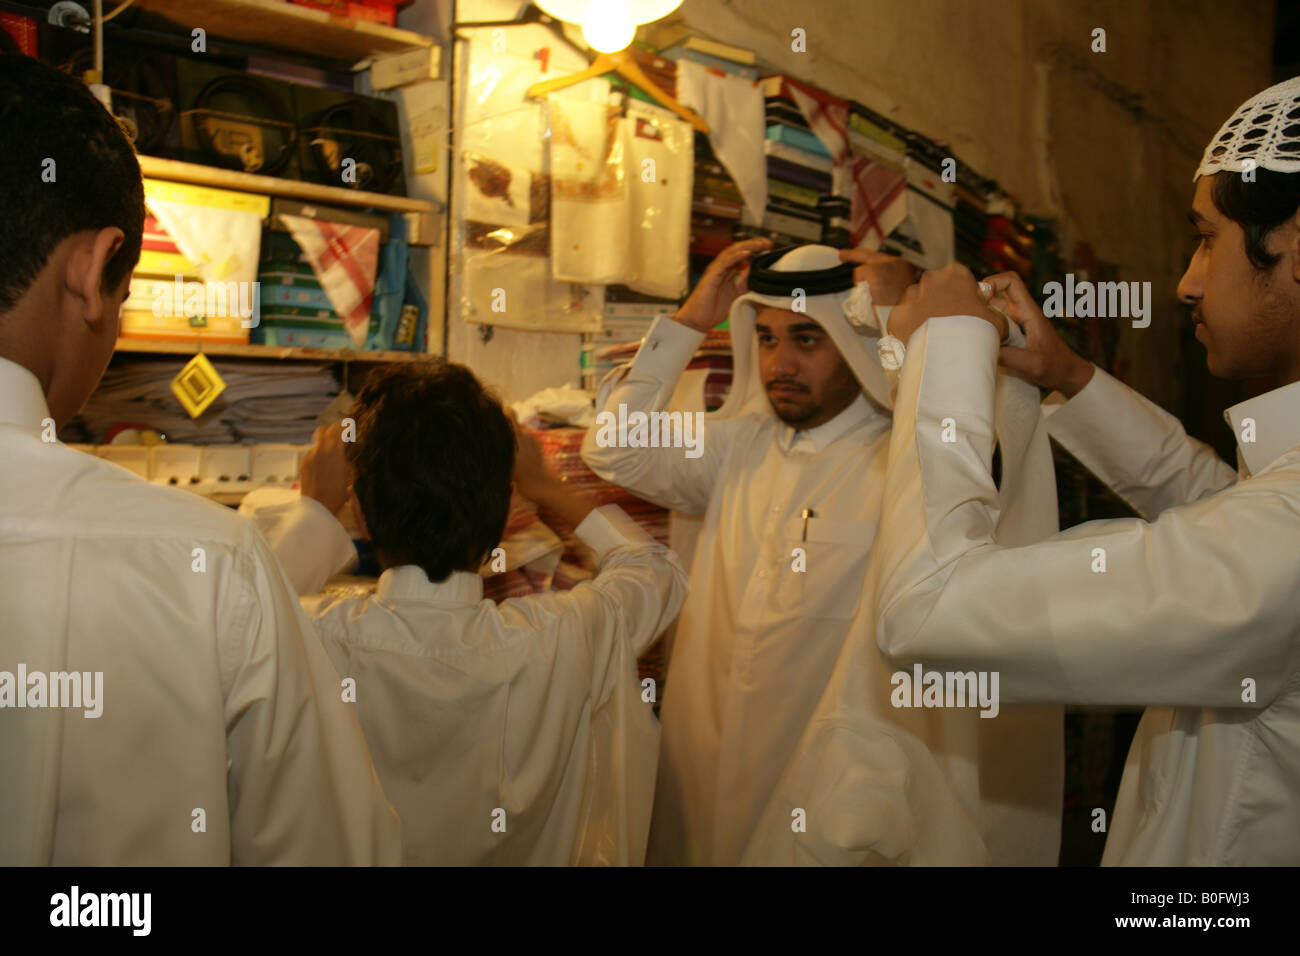 Men trying on traditional headdress at the Souq Waqif market in Doha, Qatar. Stock Photo